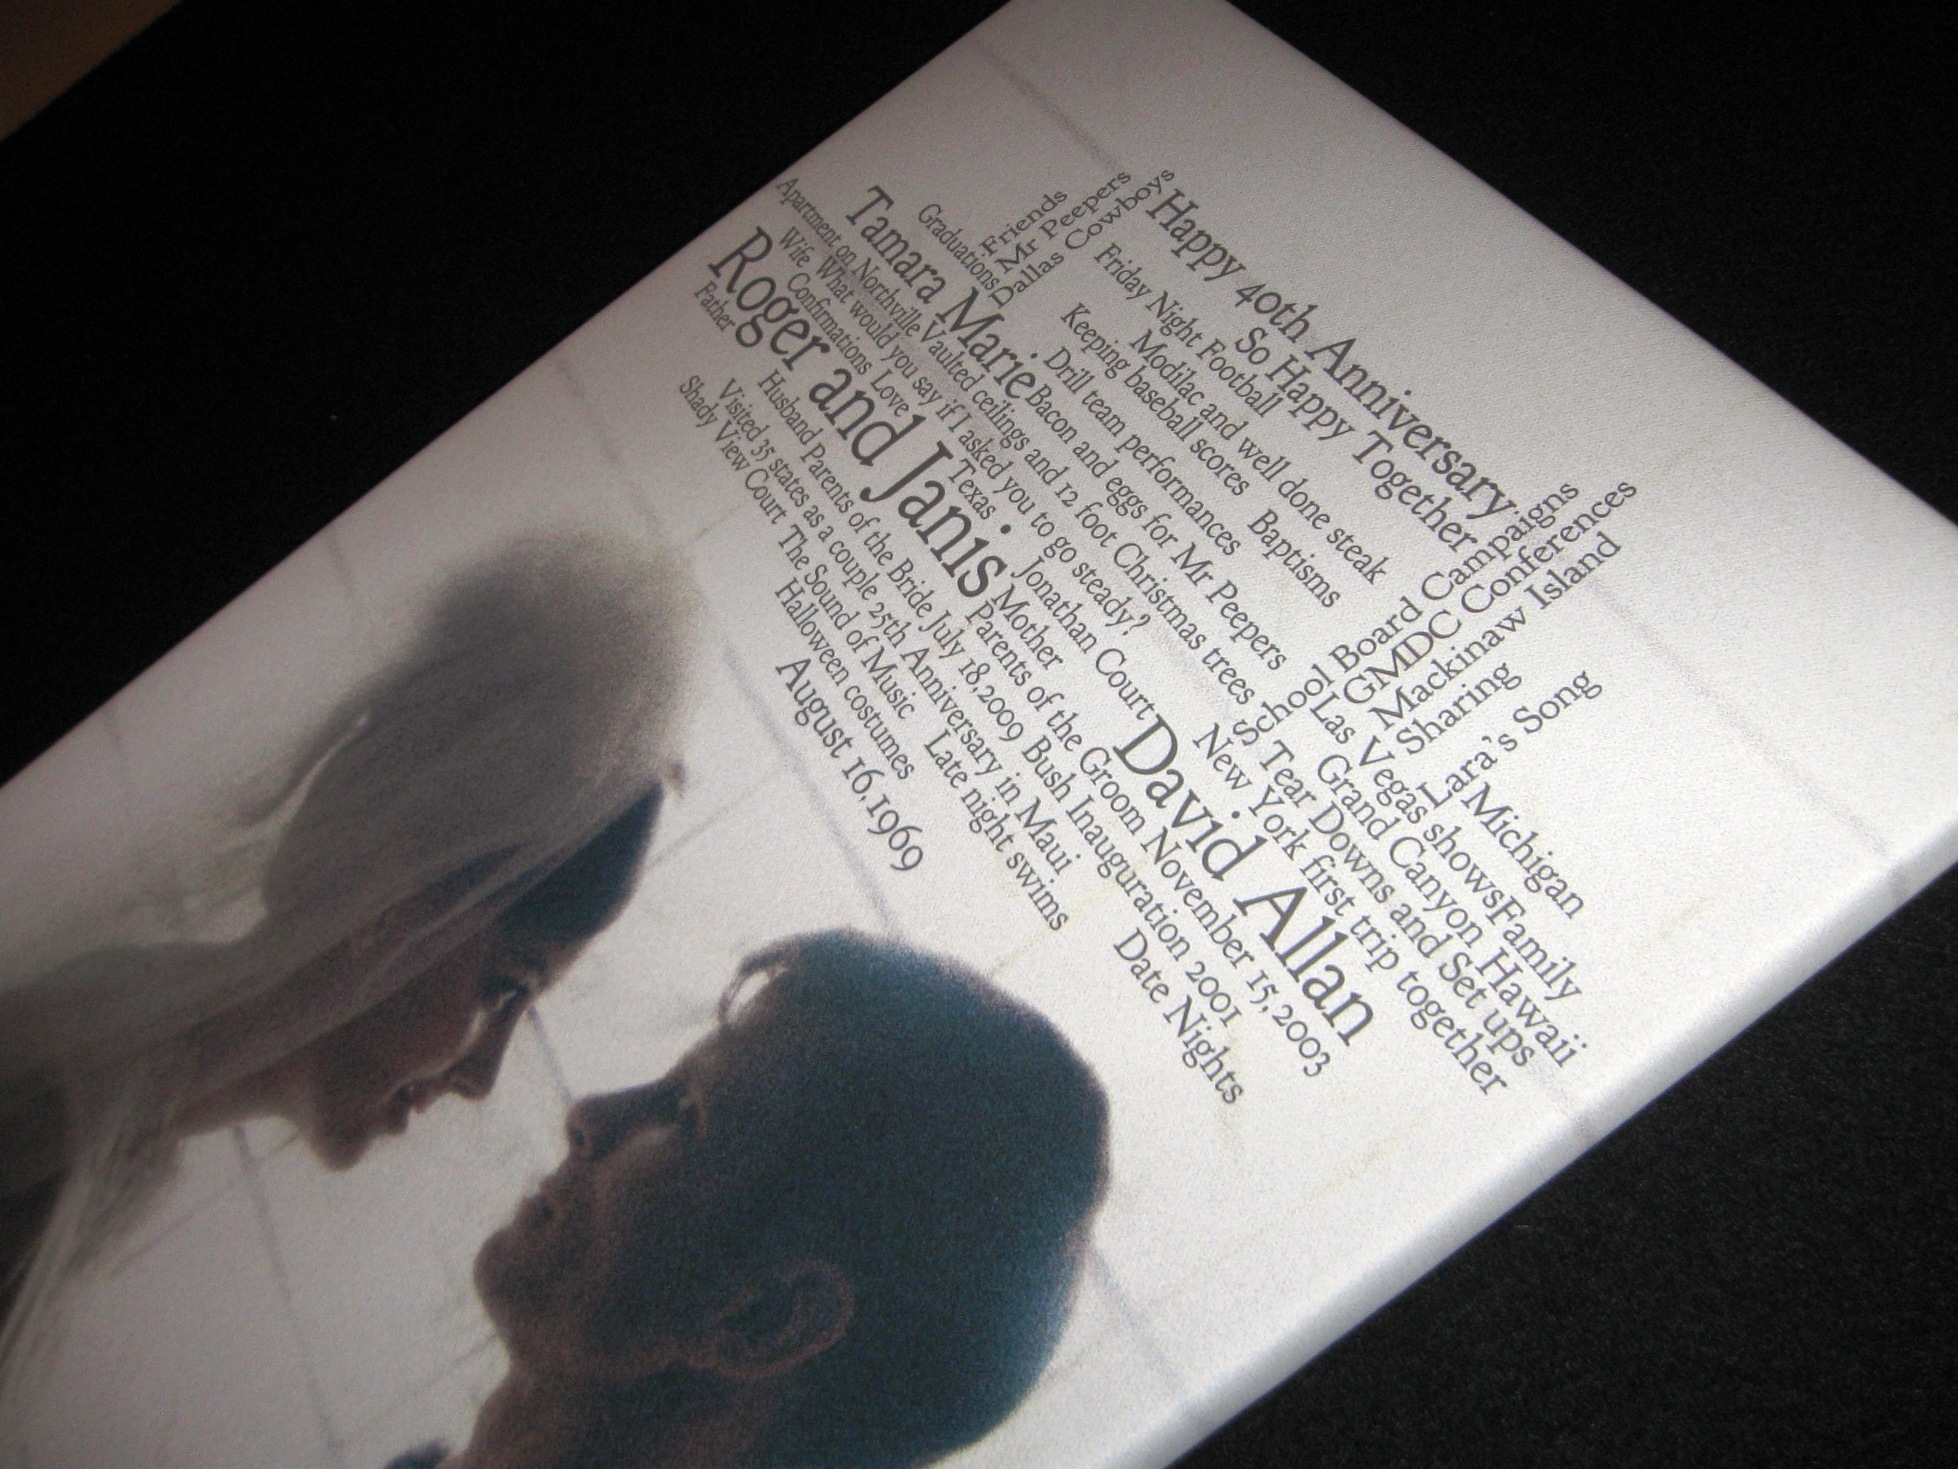 white, brown, black, Wedding, Vows, Photo, Anniversary, Canvas, Lyrics